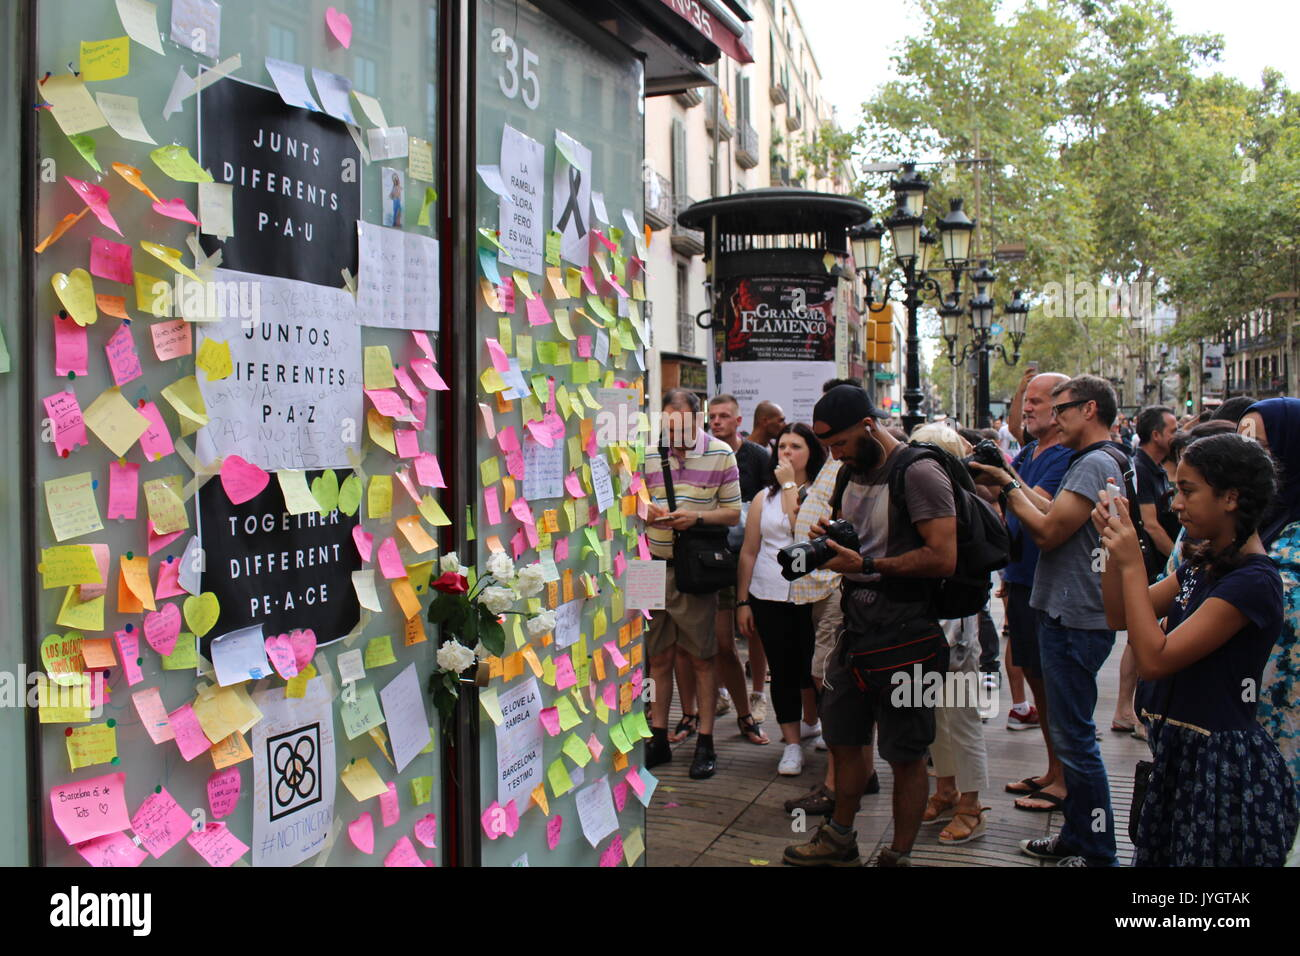 Barcelona, Spain. 19th August, 2017. Locals and tourists posting messages of condolence for the victims of the terroristic attack on Ramblas Credit: Dino Geromella/Alamy Live News Credit: Dino Geromella/Alamy Live News - Stock Image